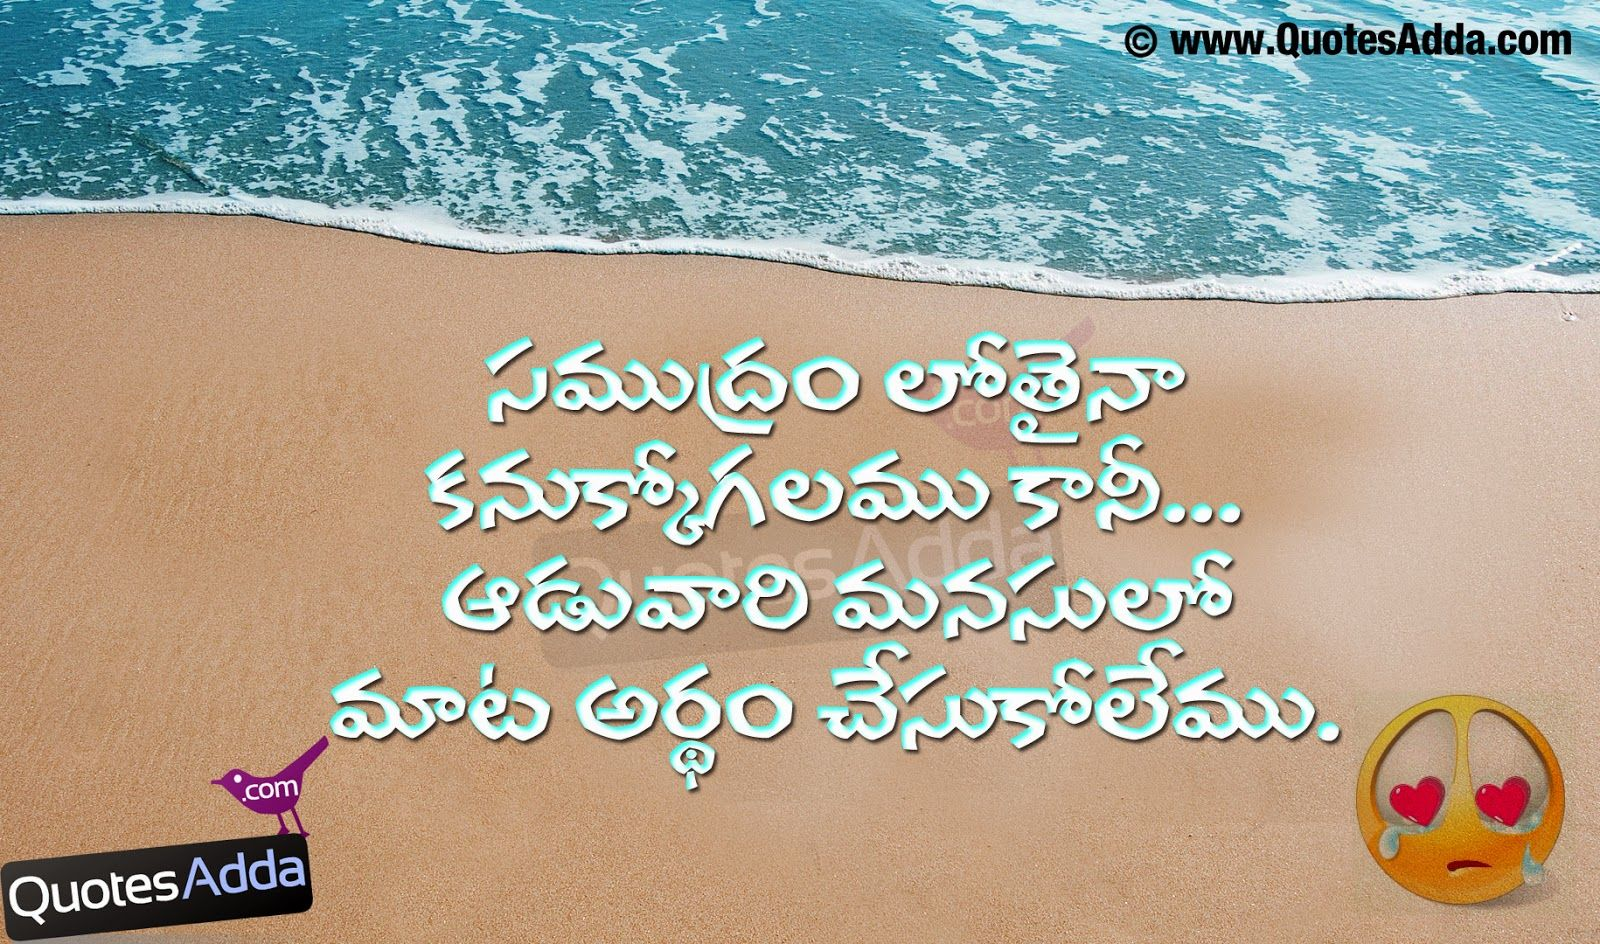 Beau Funny Quotes Images Tamil Telugu Girls Feelings Quotes Images QuotesAddacom  Telugu